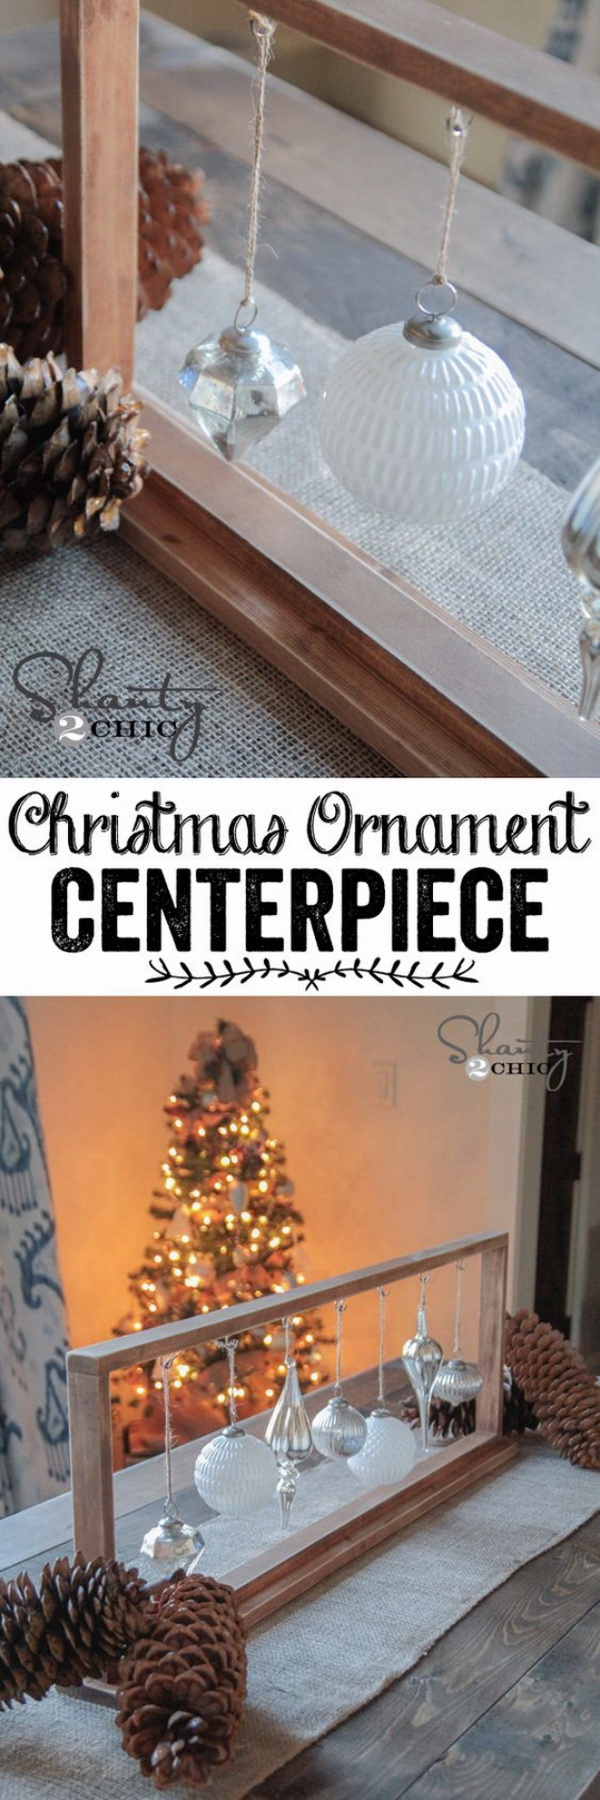 DIY Christmas Ornament Centerpiece. A DIY ornament centerpiece great for rustic farmhouse for this Christmas decoration!